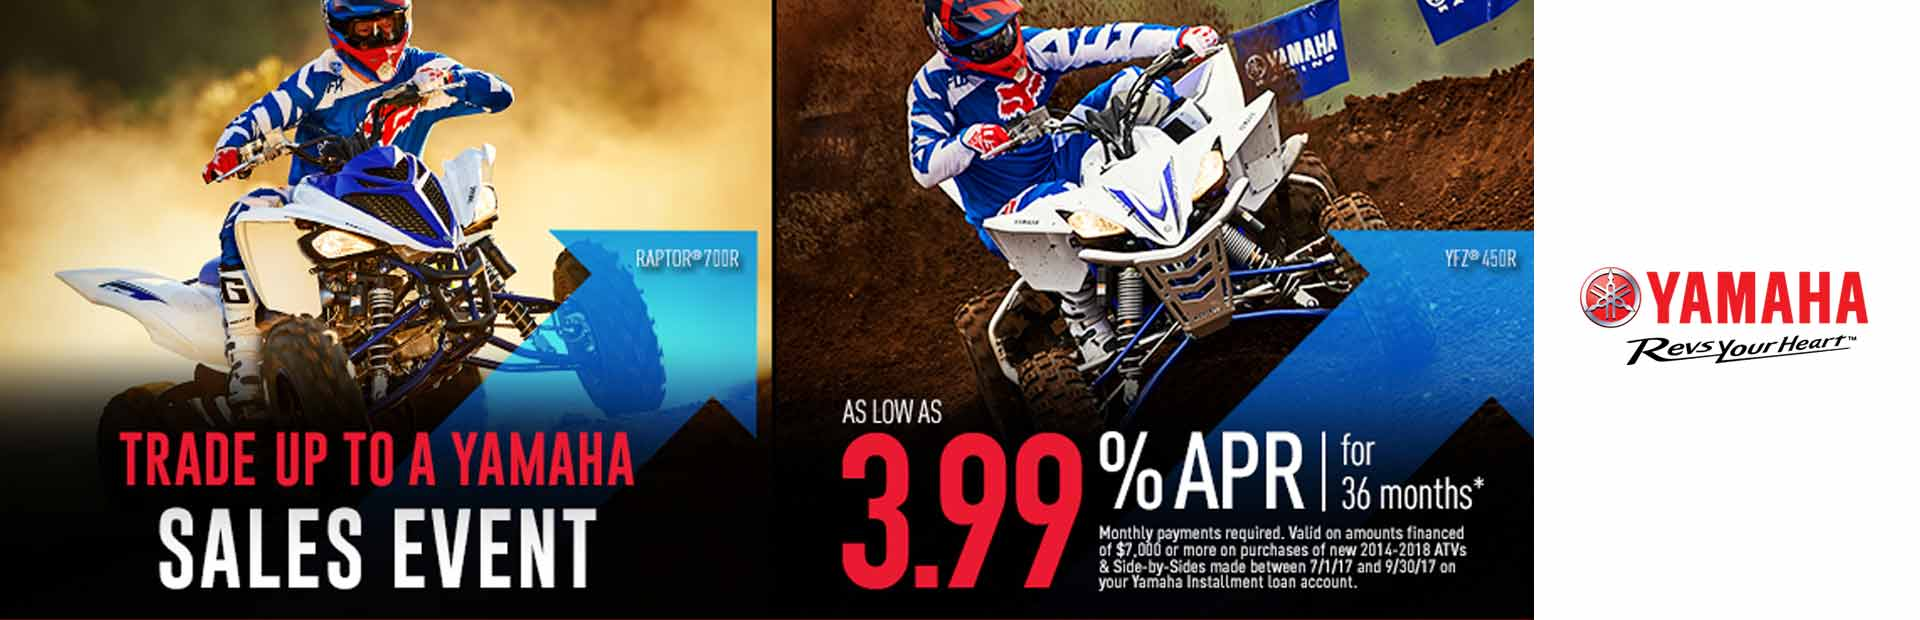 Yamaha: As Low As 3.99% APR For 36 Months*